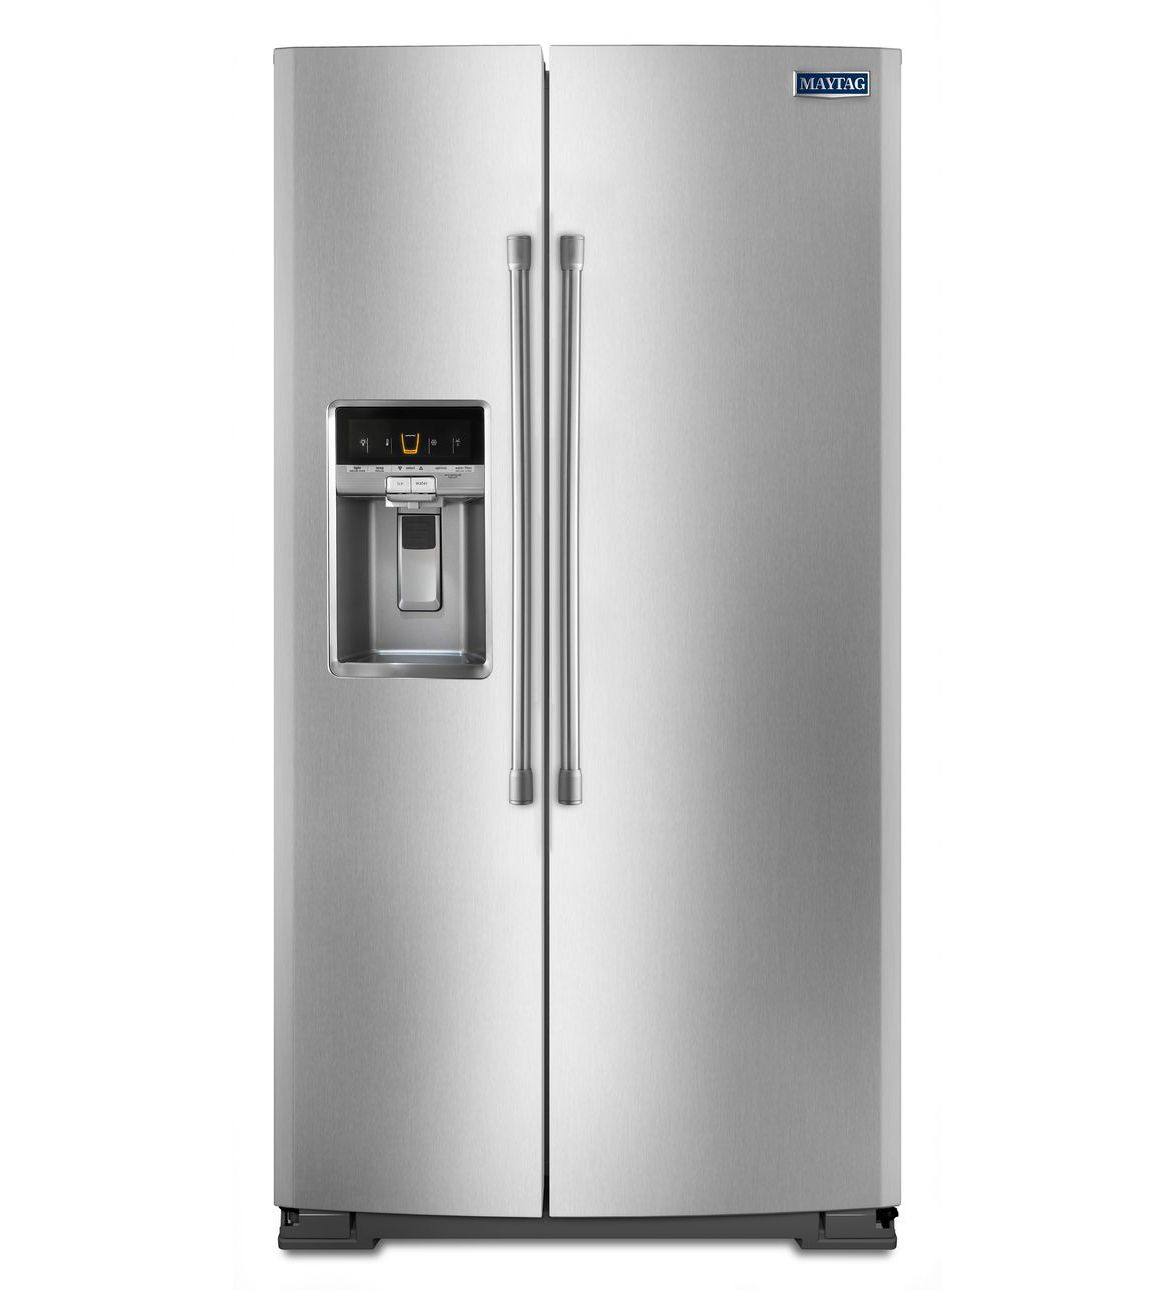 amazing Maytag Kitchen Appliances Reviews #7: The Maytag Side-by-Side Refrigerator Review